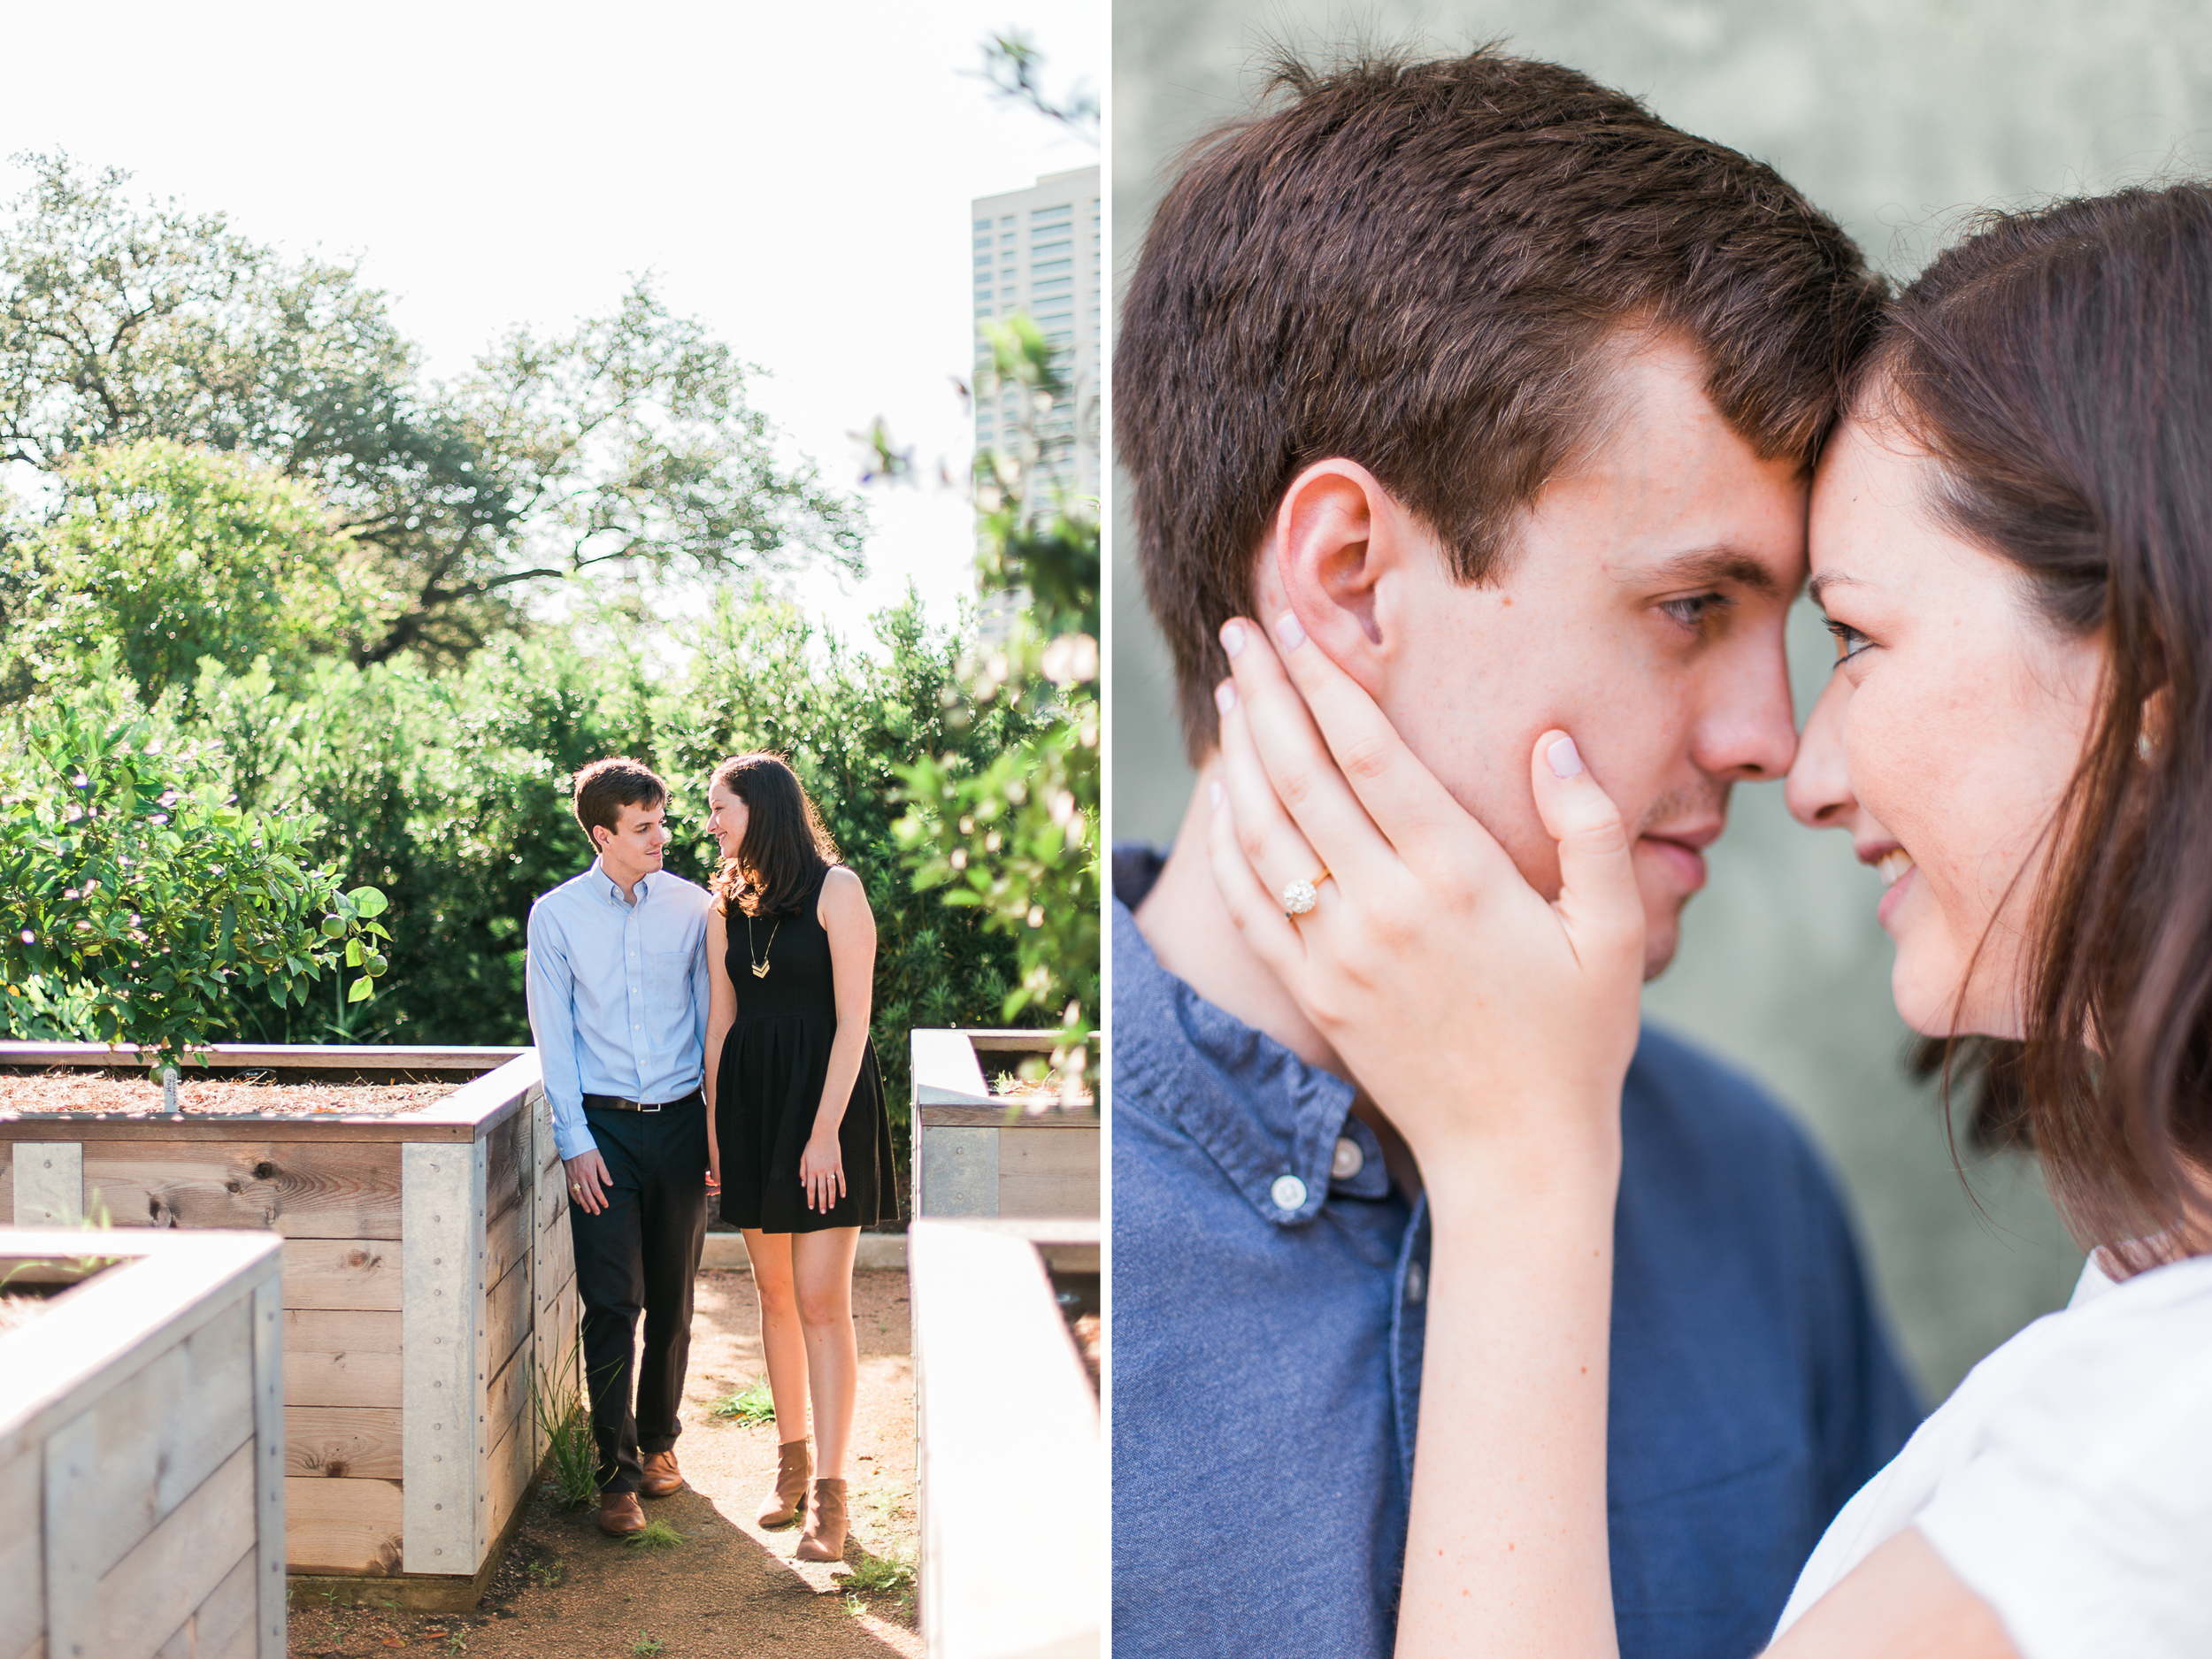 texas houston engagement proposal couple wedding hermann park portrait adventure photographer photography the woodlands